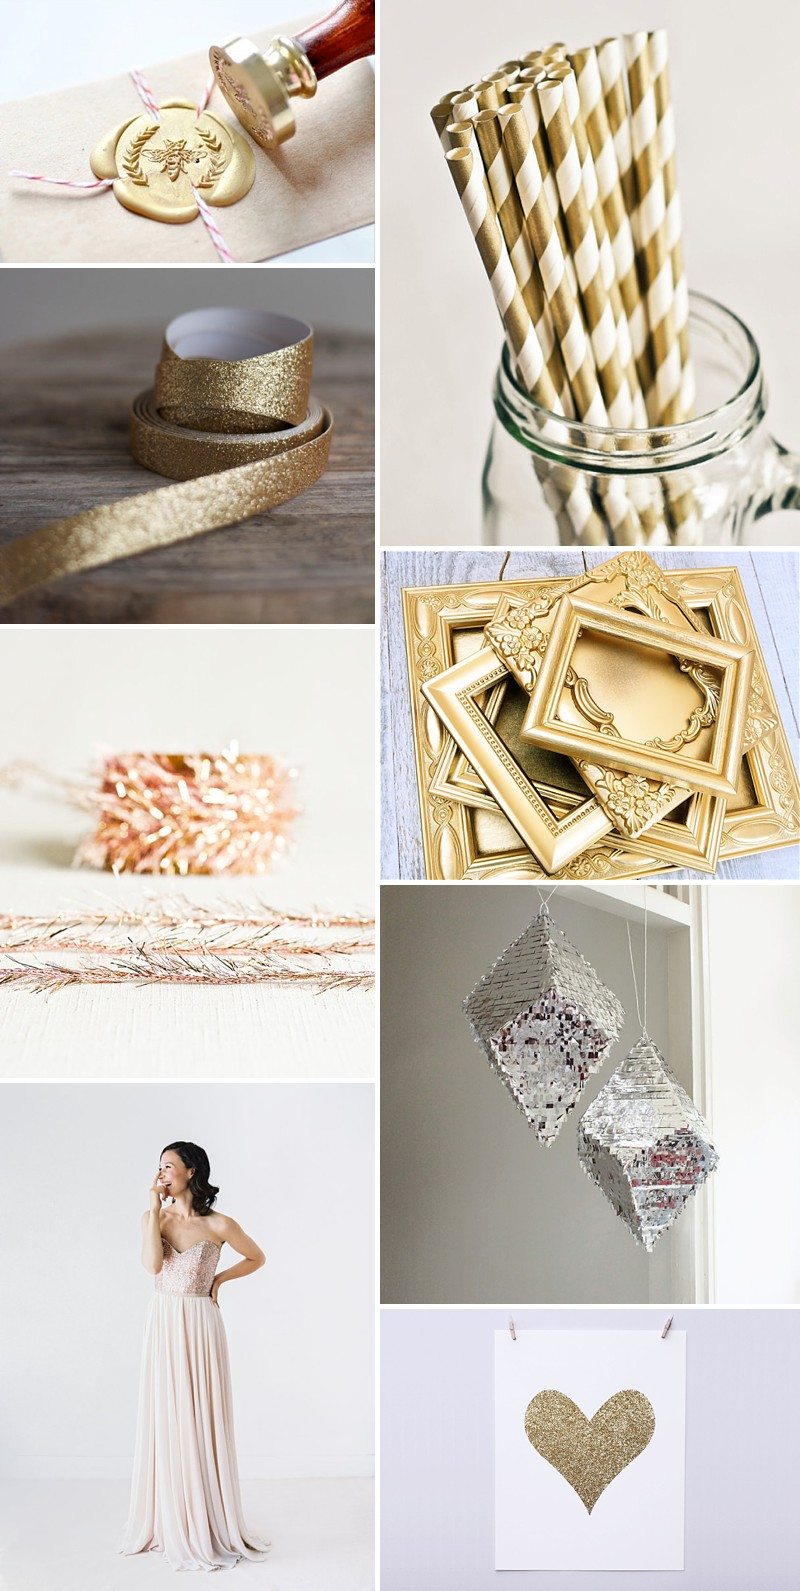 A Beautiful Selection Of The Best Metallic And Golden Wedding Products On Etsy._0003